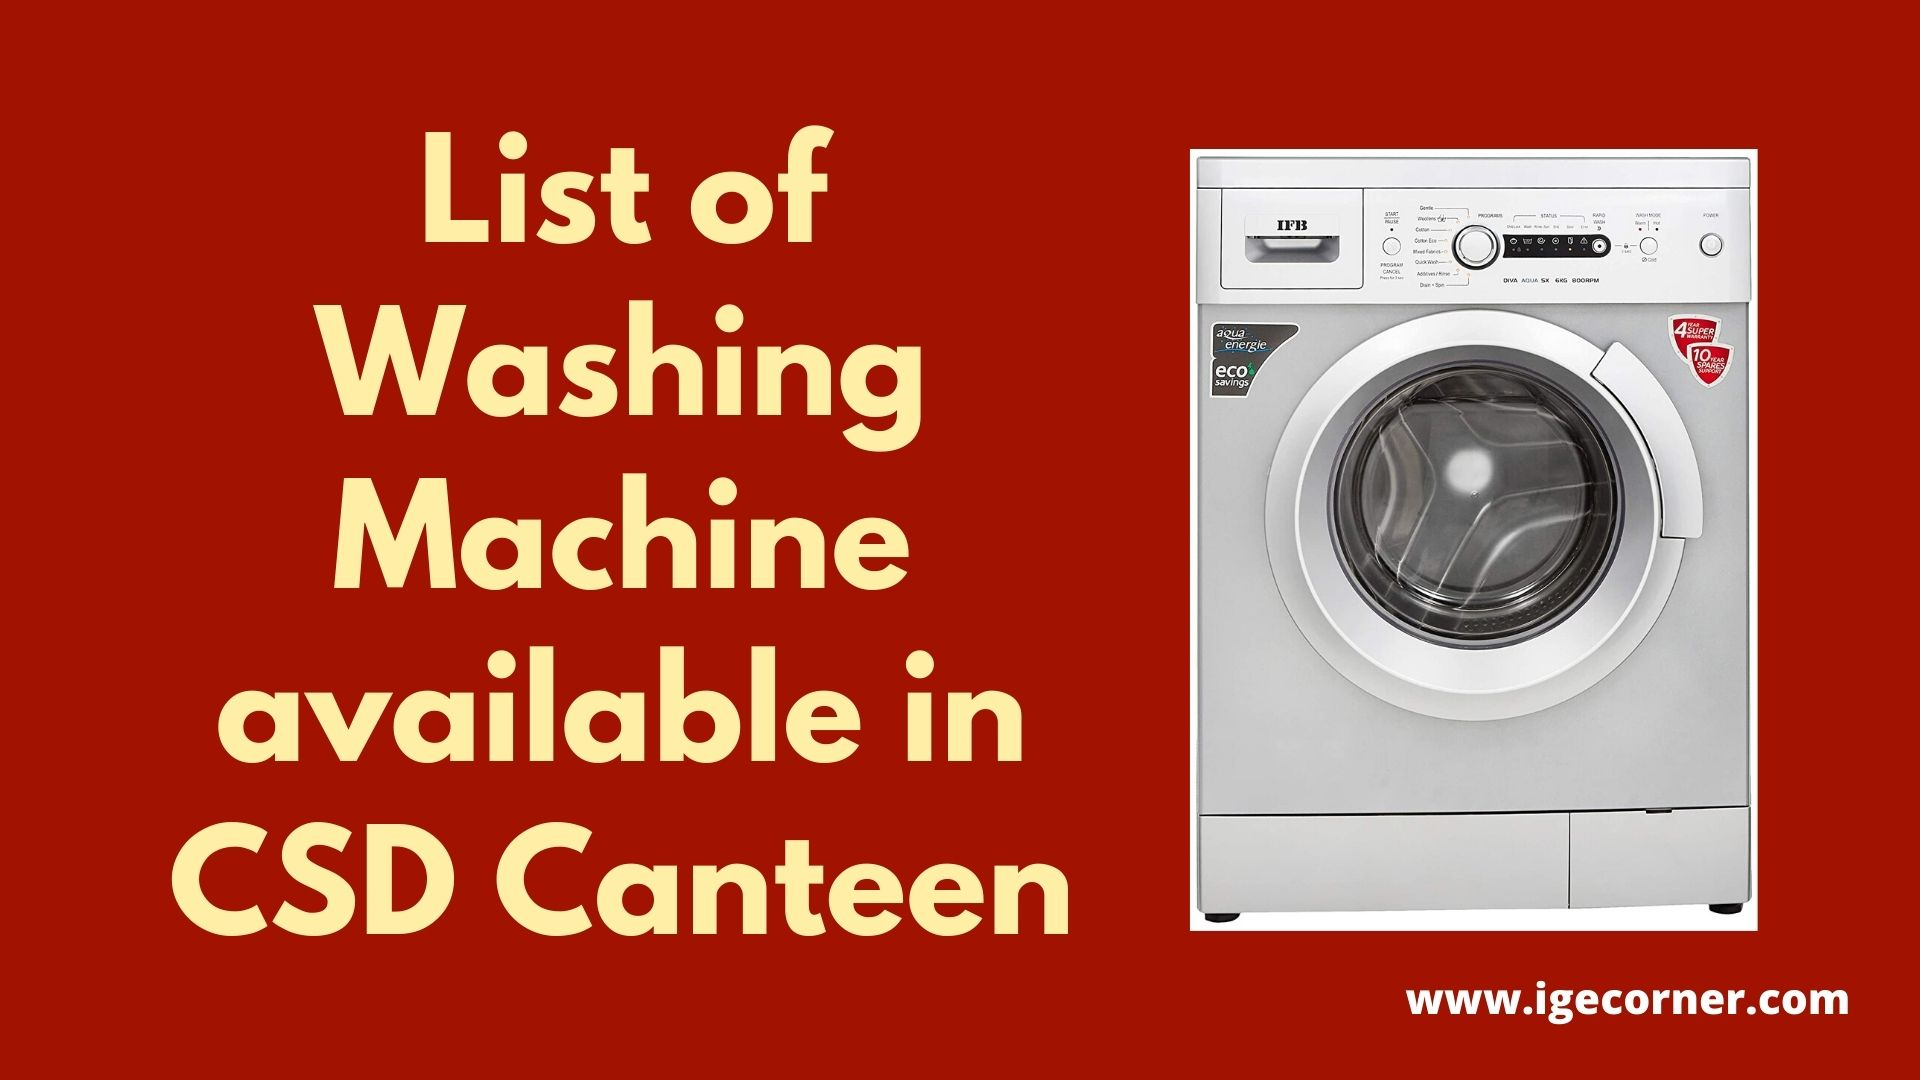 List of Washing Machine available in CSD Canteen